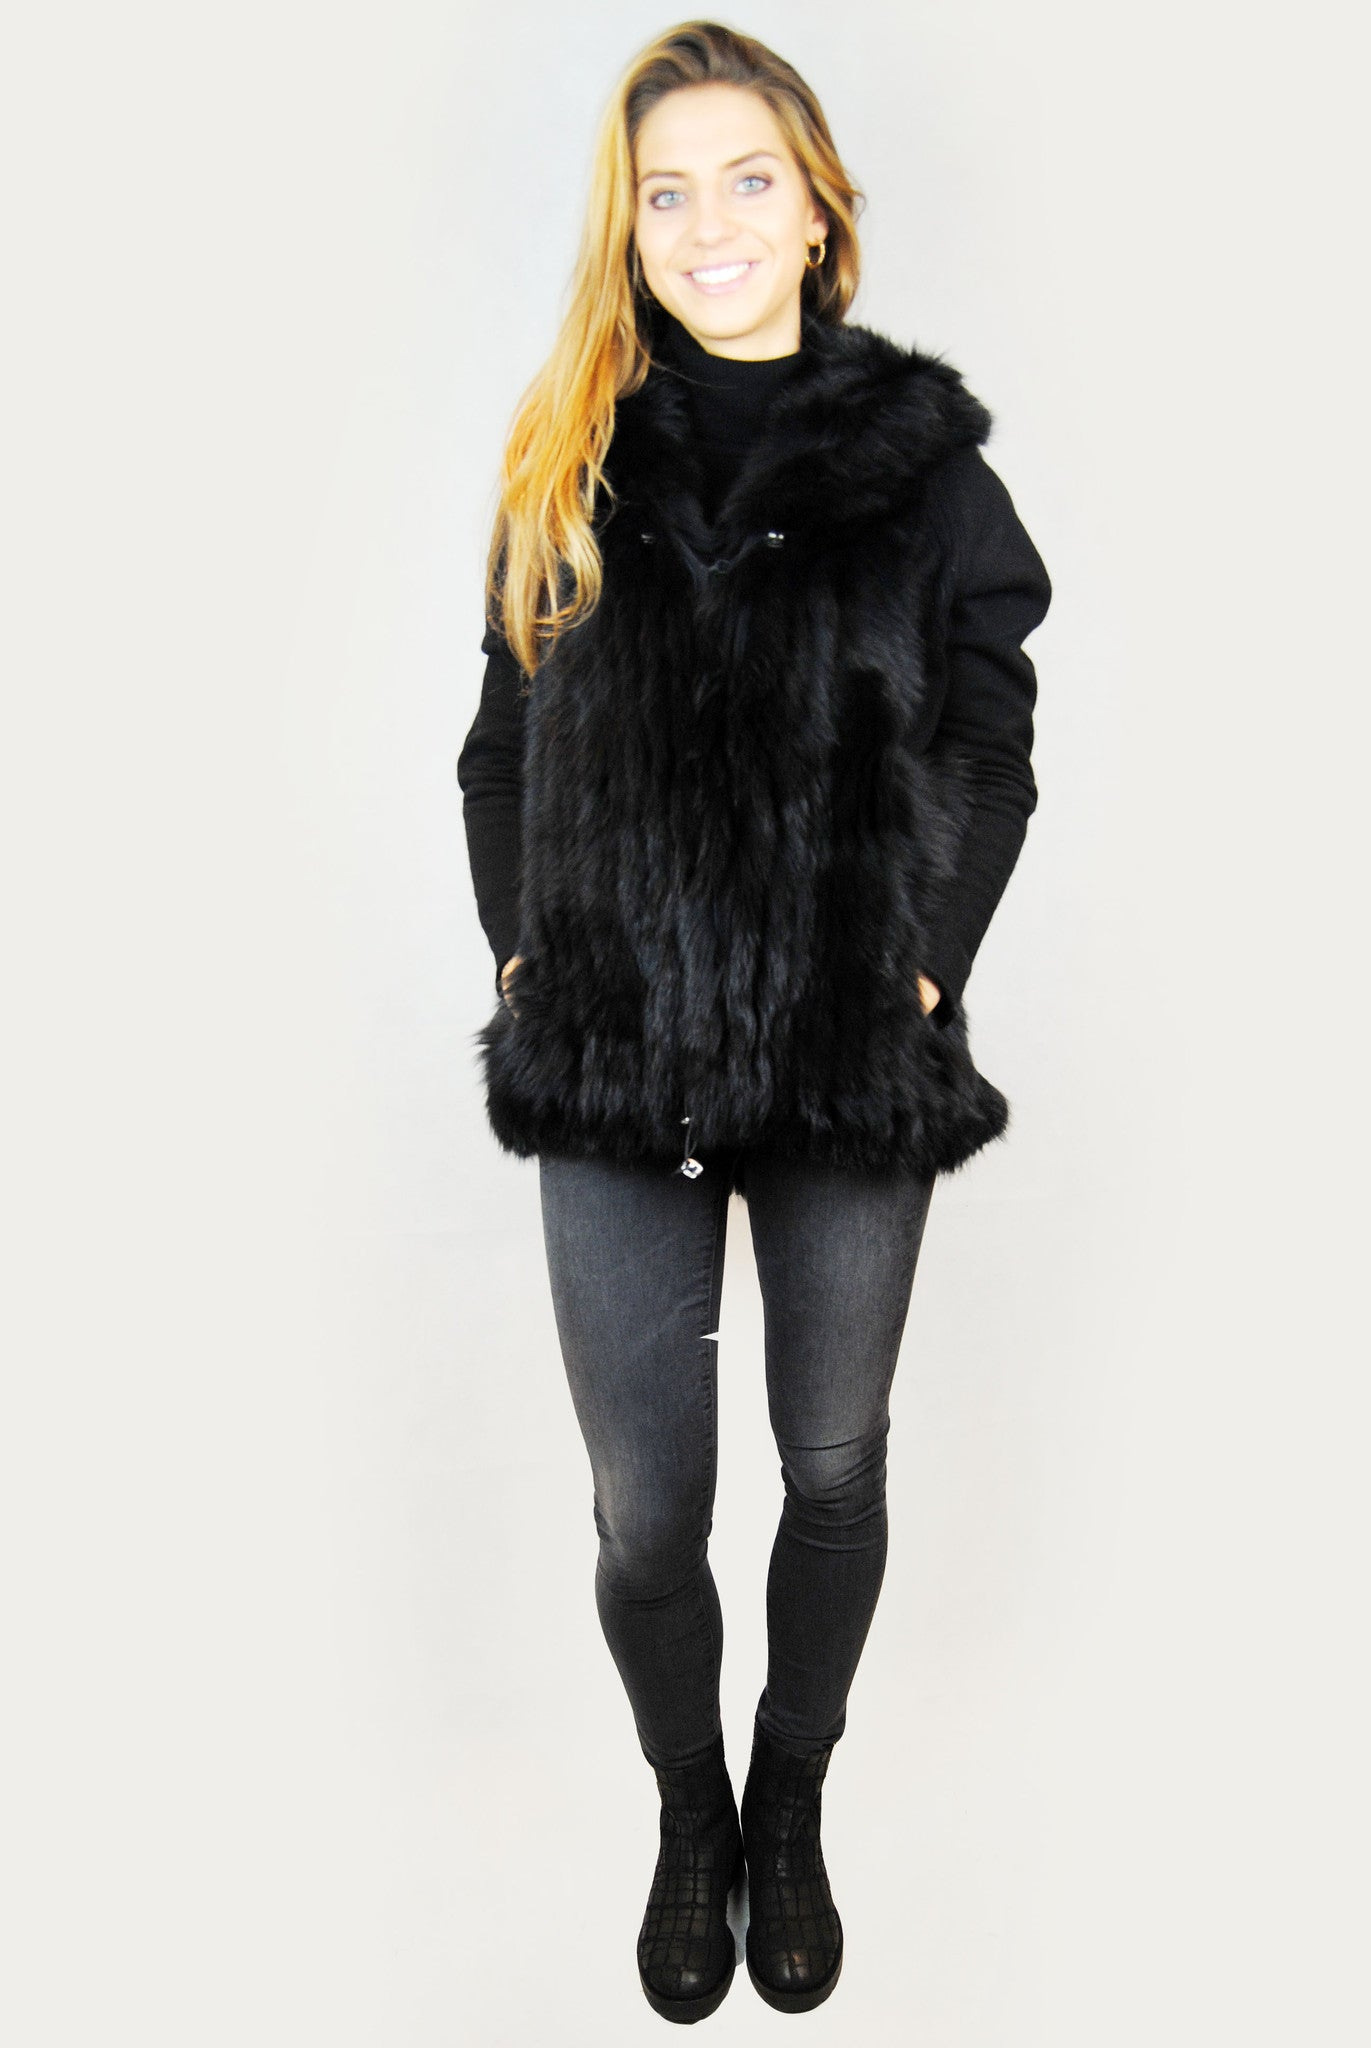 964b083d6 Products - Jessimara Fur